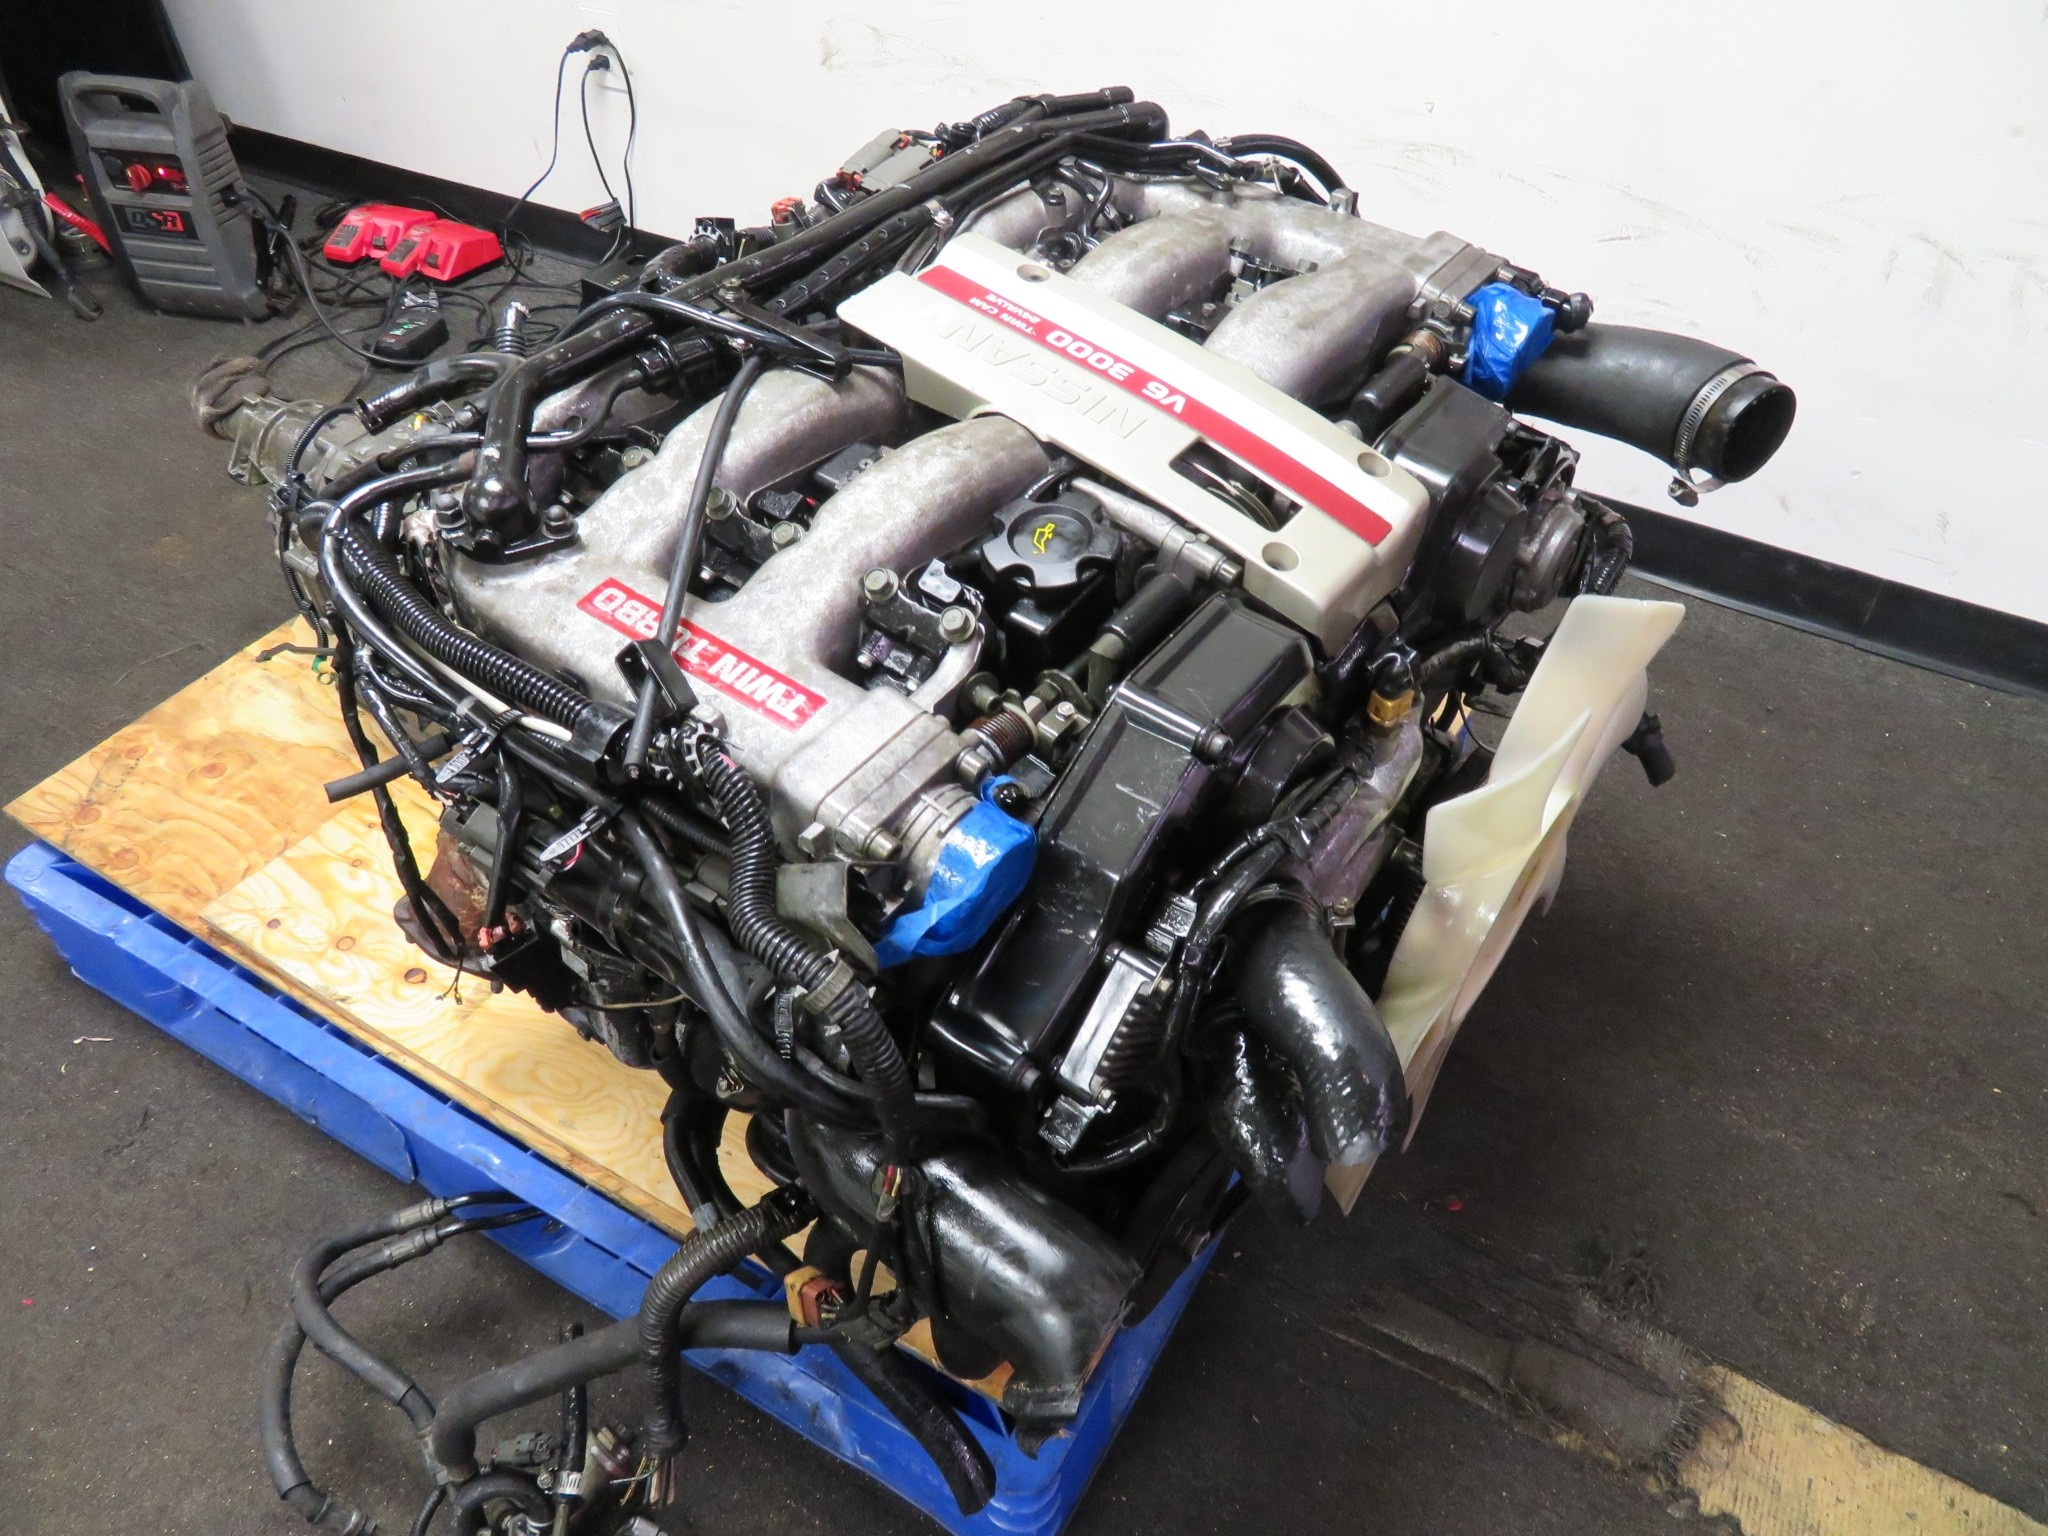 90-96 JDM NISSAN 300ZX TWIN TURBO VG30DETT 3.0L V6 ENGINE, AUTOMATIC TRANSMISSION, WIRING HARNESS & ECU